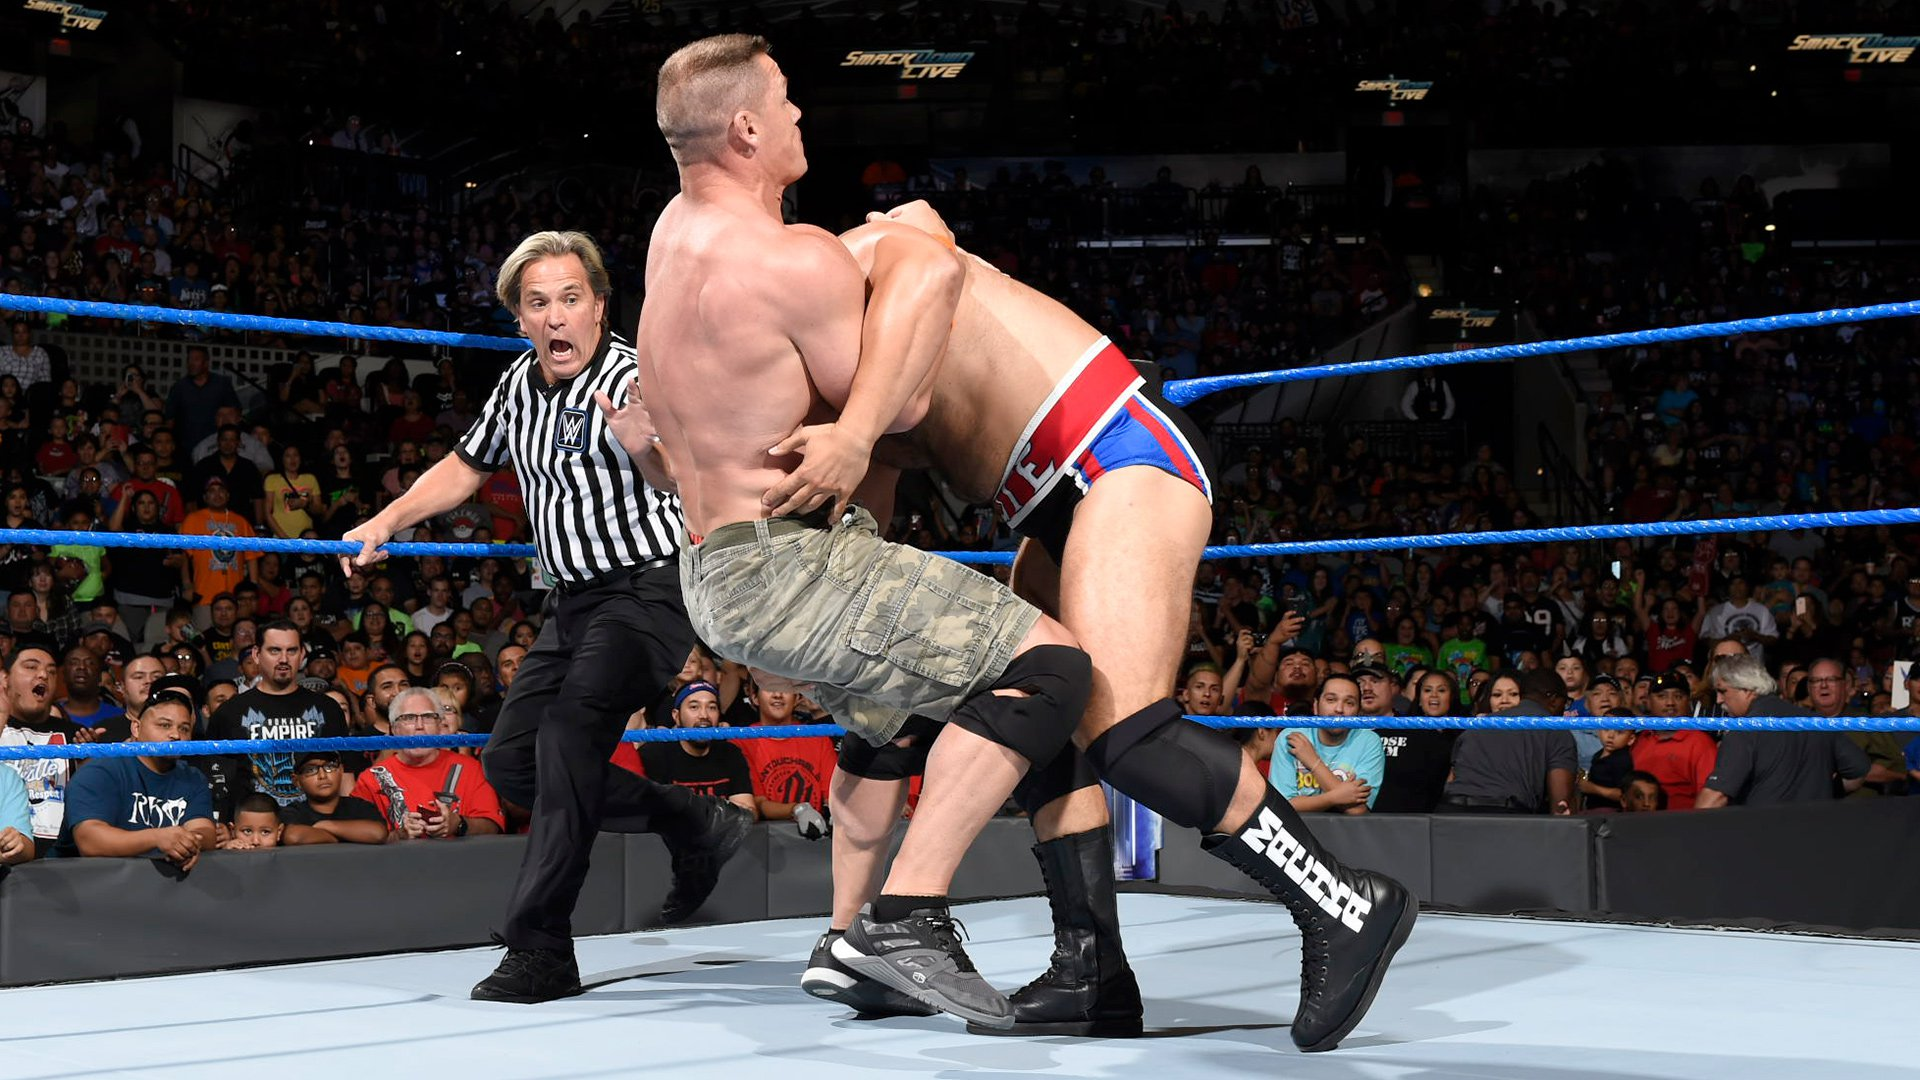 Suddenly, Rusev sneaks into the ring and attacks Cena!